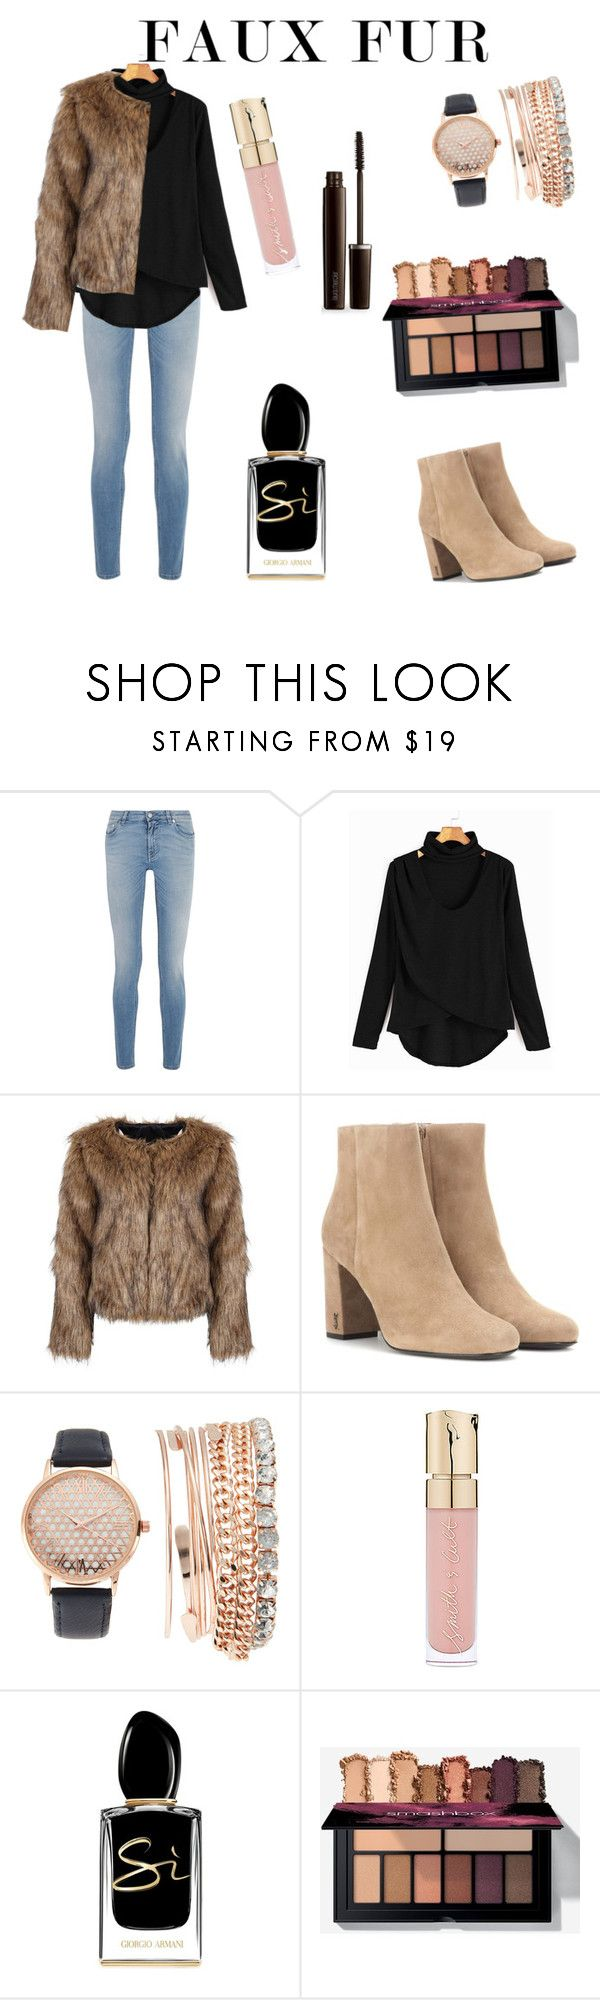 """""""Faux Fur"""" by spookie1 ❤ liked on Polyvore featuring Givenchy, Yves Saint Laurent, Jessica Carlyle, Smith & Cult, Giorgio Armani and Laura Mercier"""